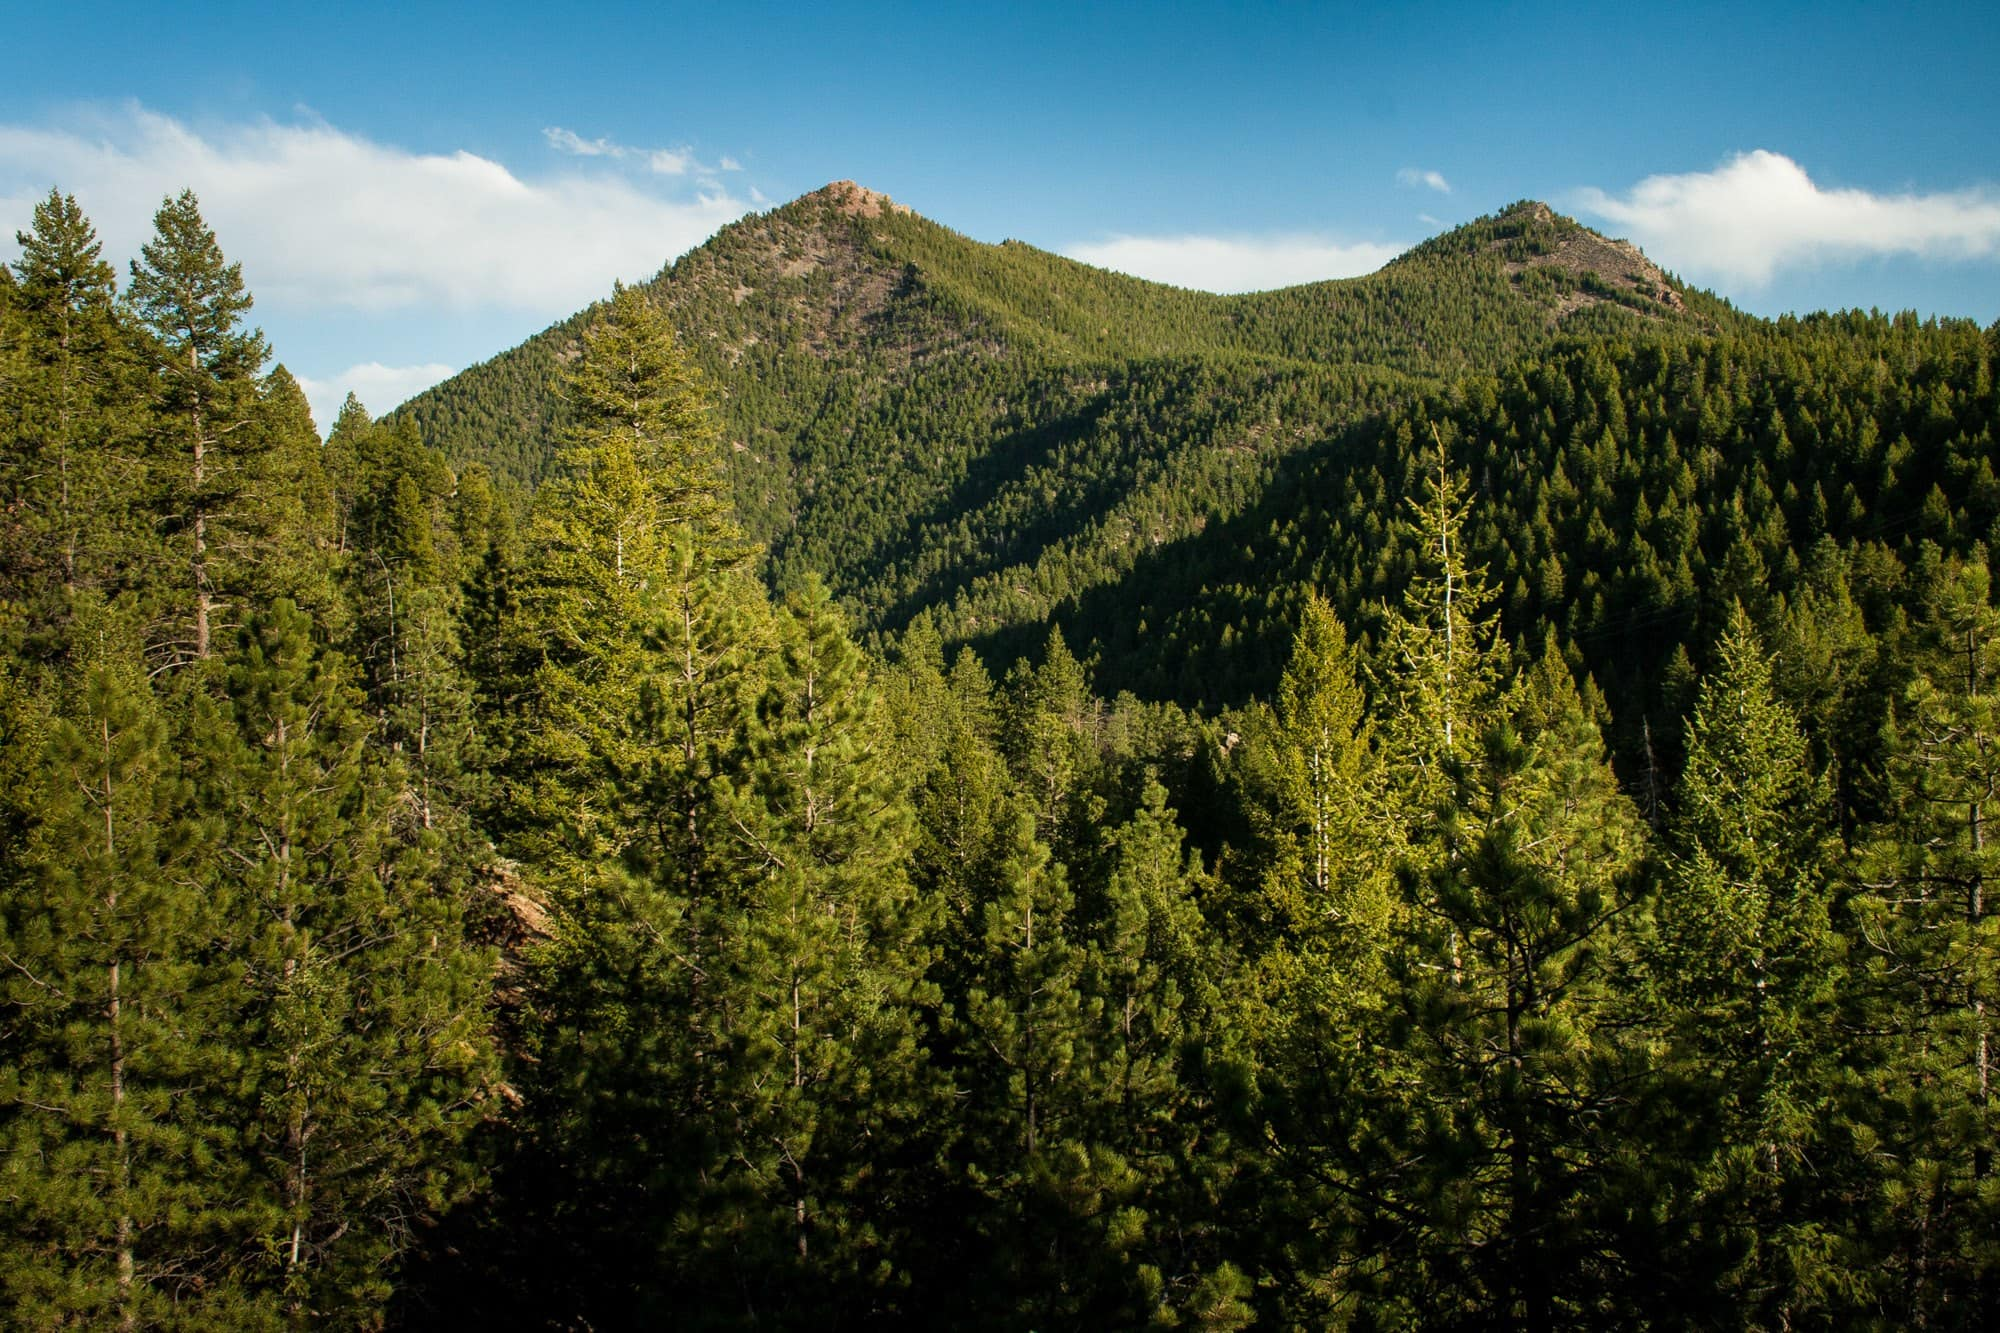 Skyline Traverse // Don't wait until the high elevation snow melts to start hiking in Colorado this summer. here are 5 Colorado spring hikes in the Front Range that are perfect for mud season.